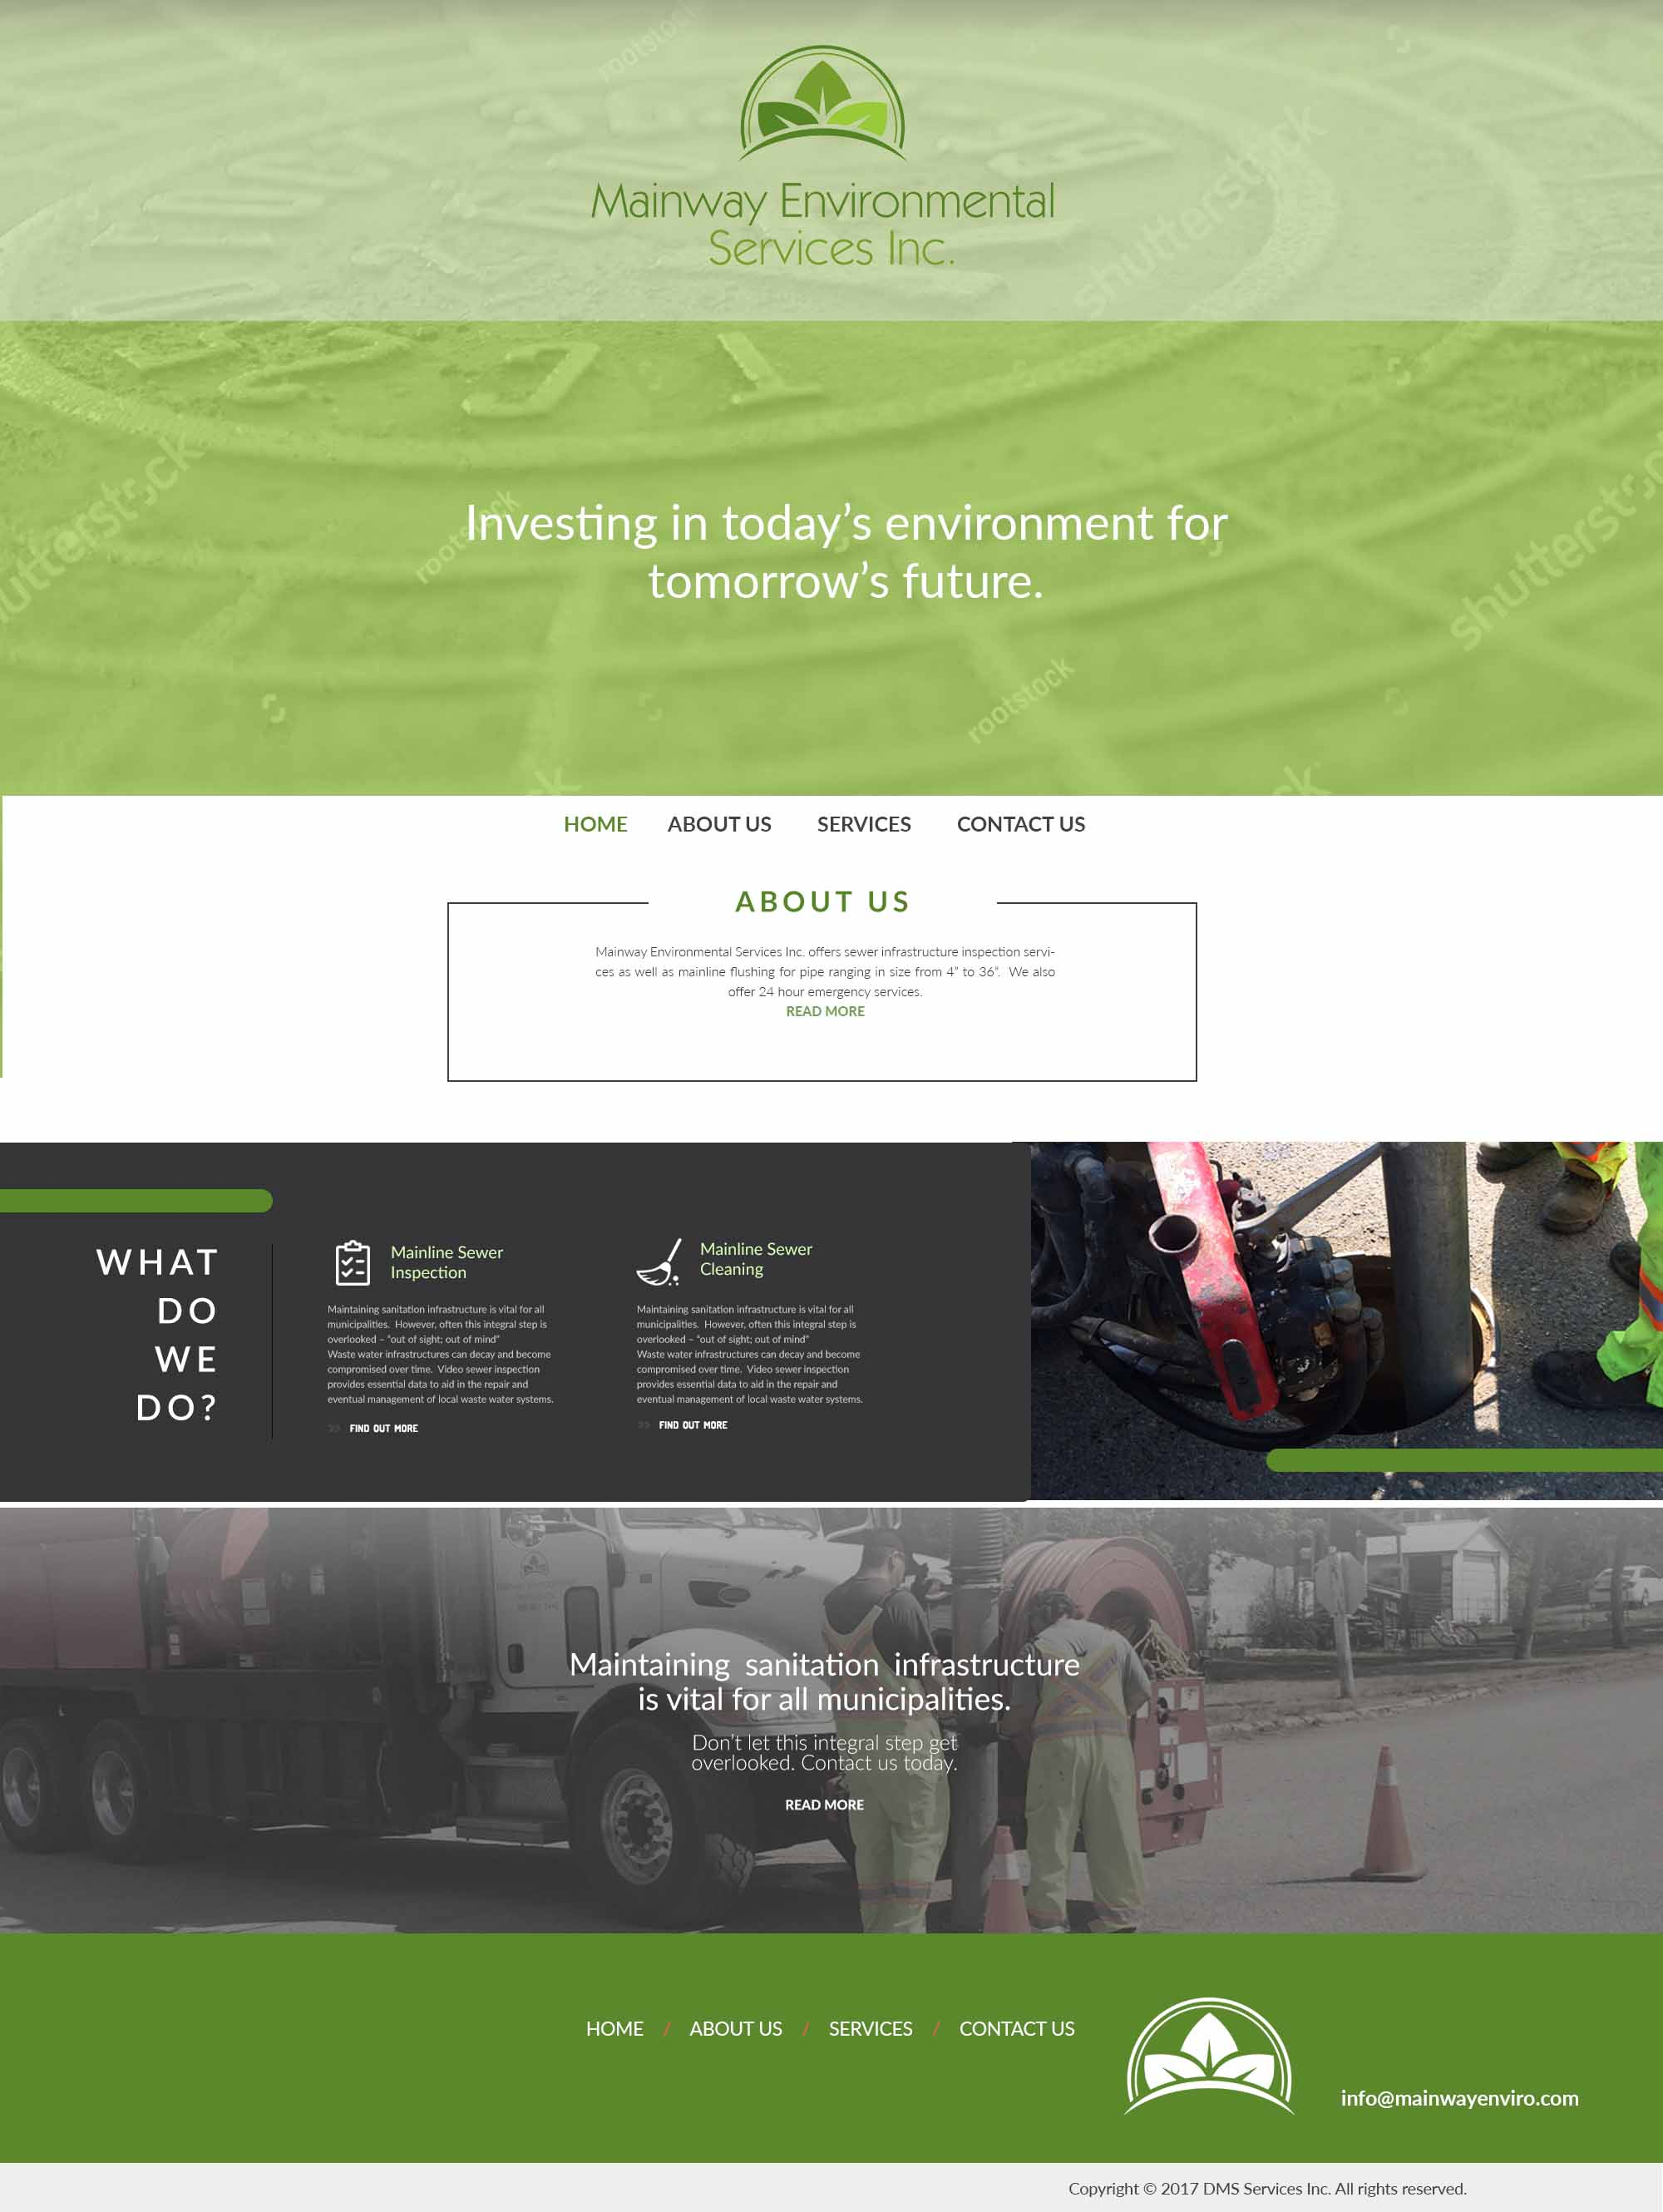 DMS Services Website Portfolio - Mainway Environmental Services Inc.